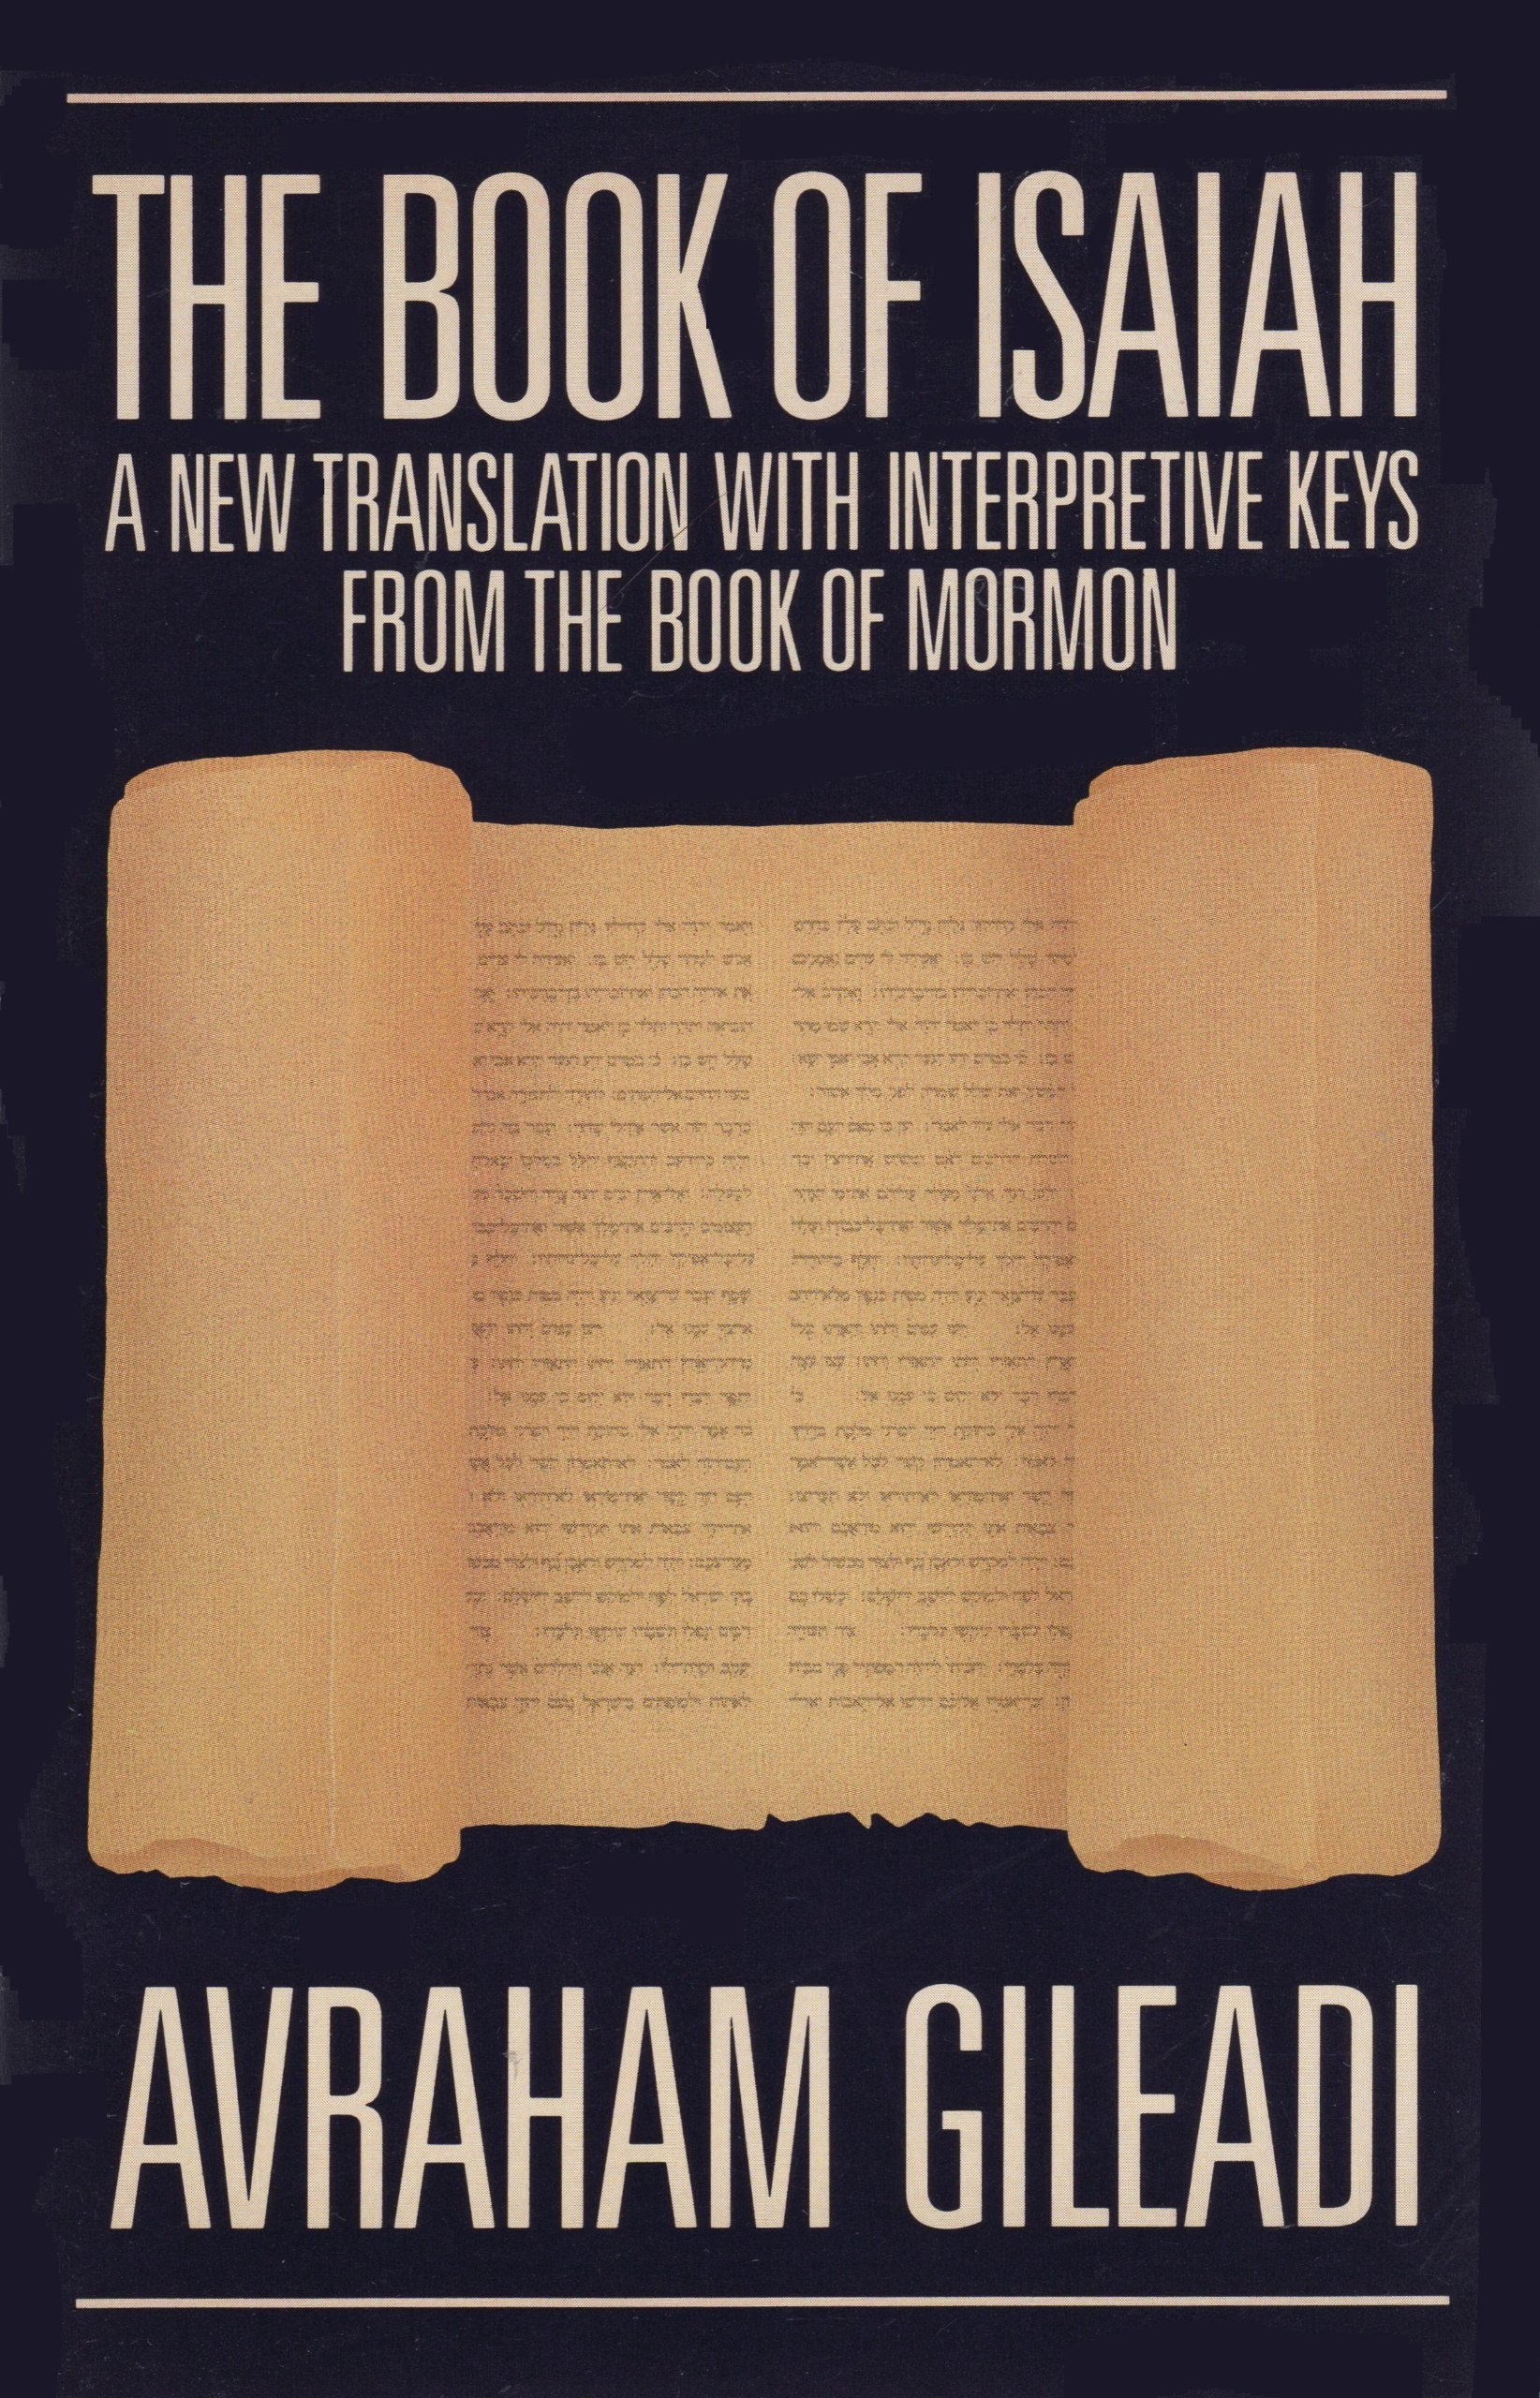 Image for The Book of Isaiah: A New Translation With Interpretive Keys from the Book of Mormon